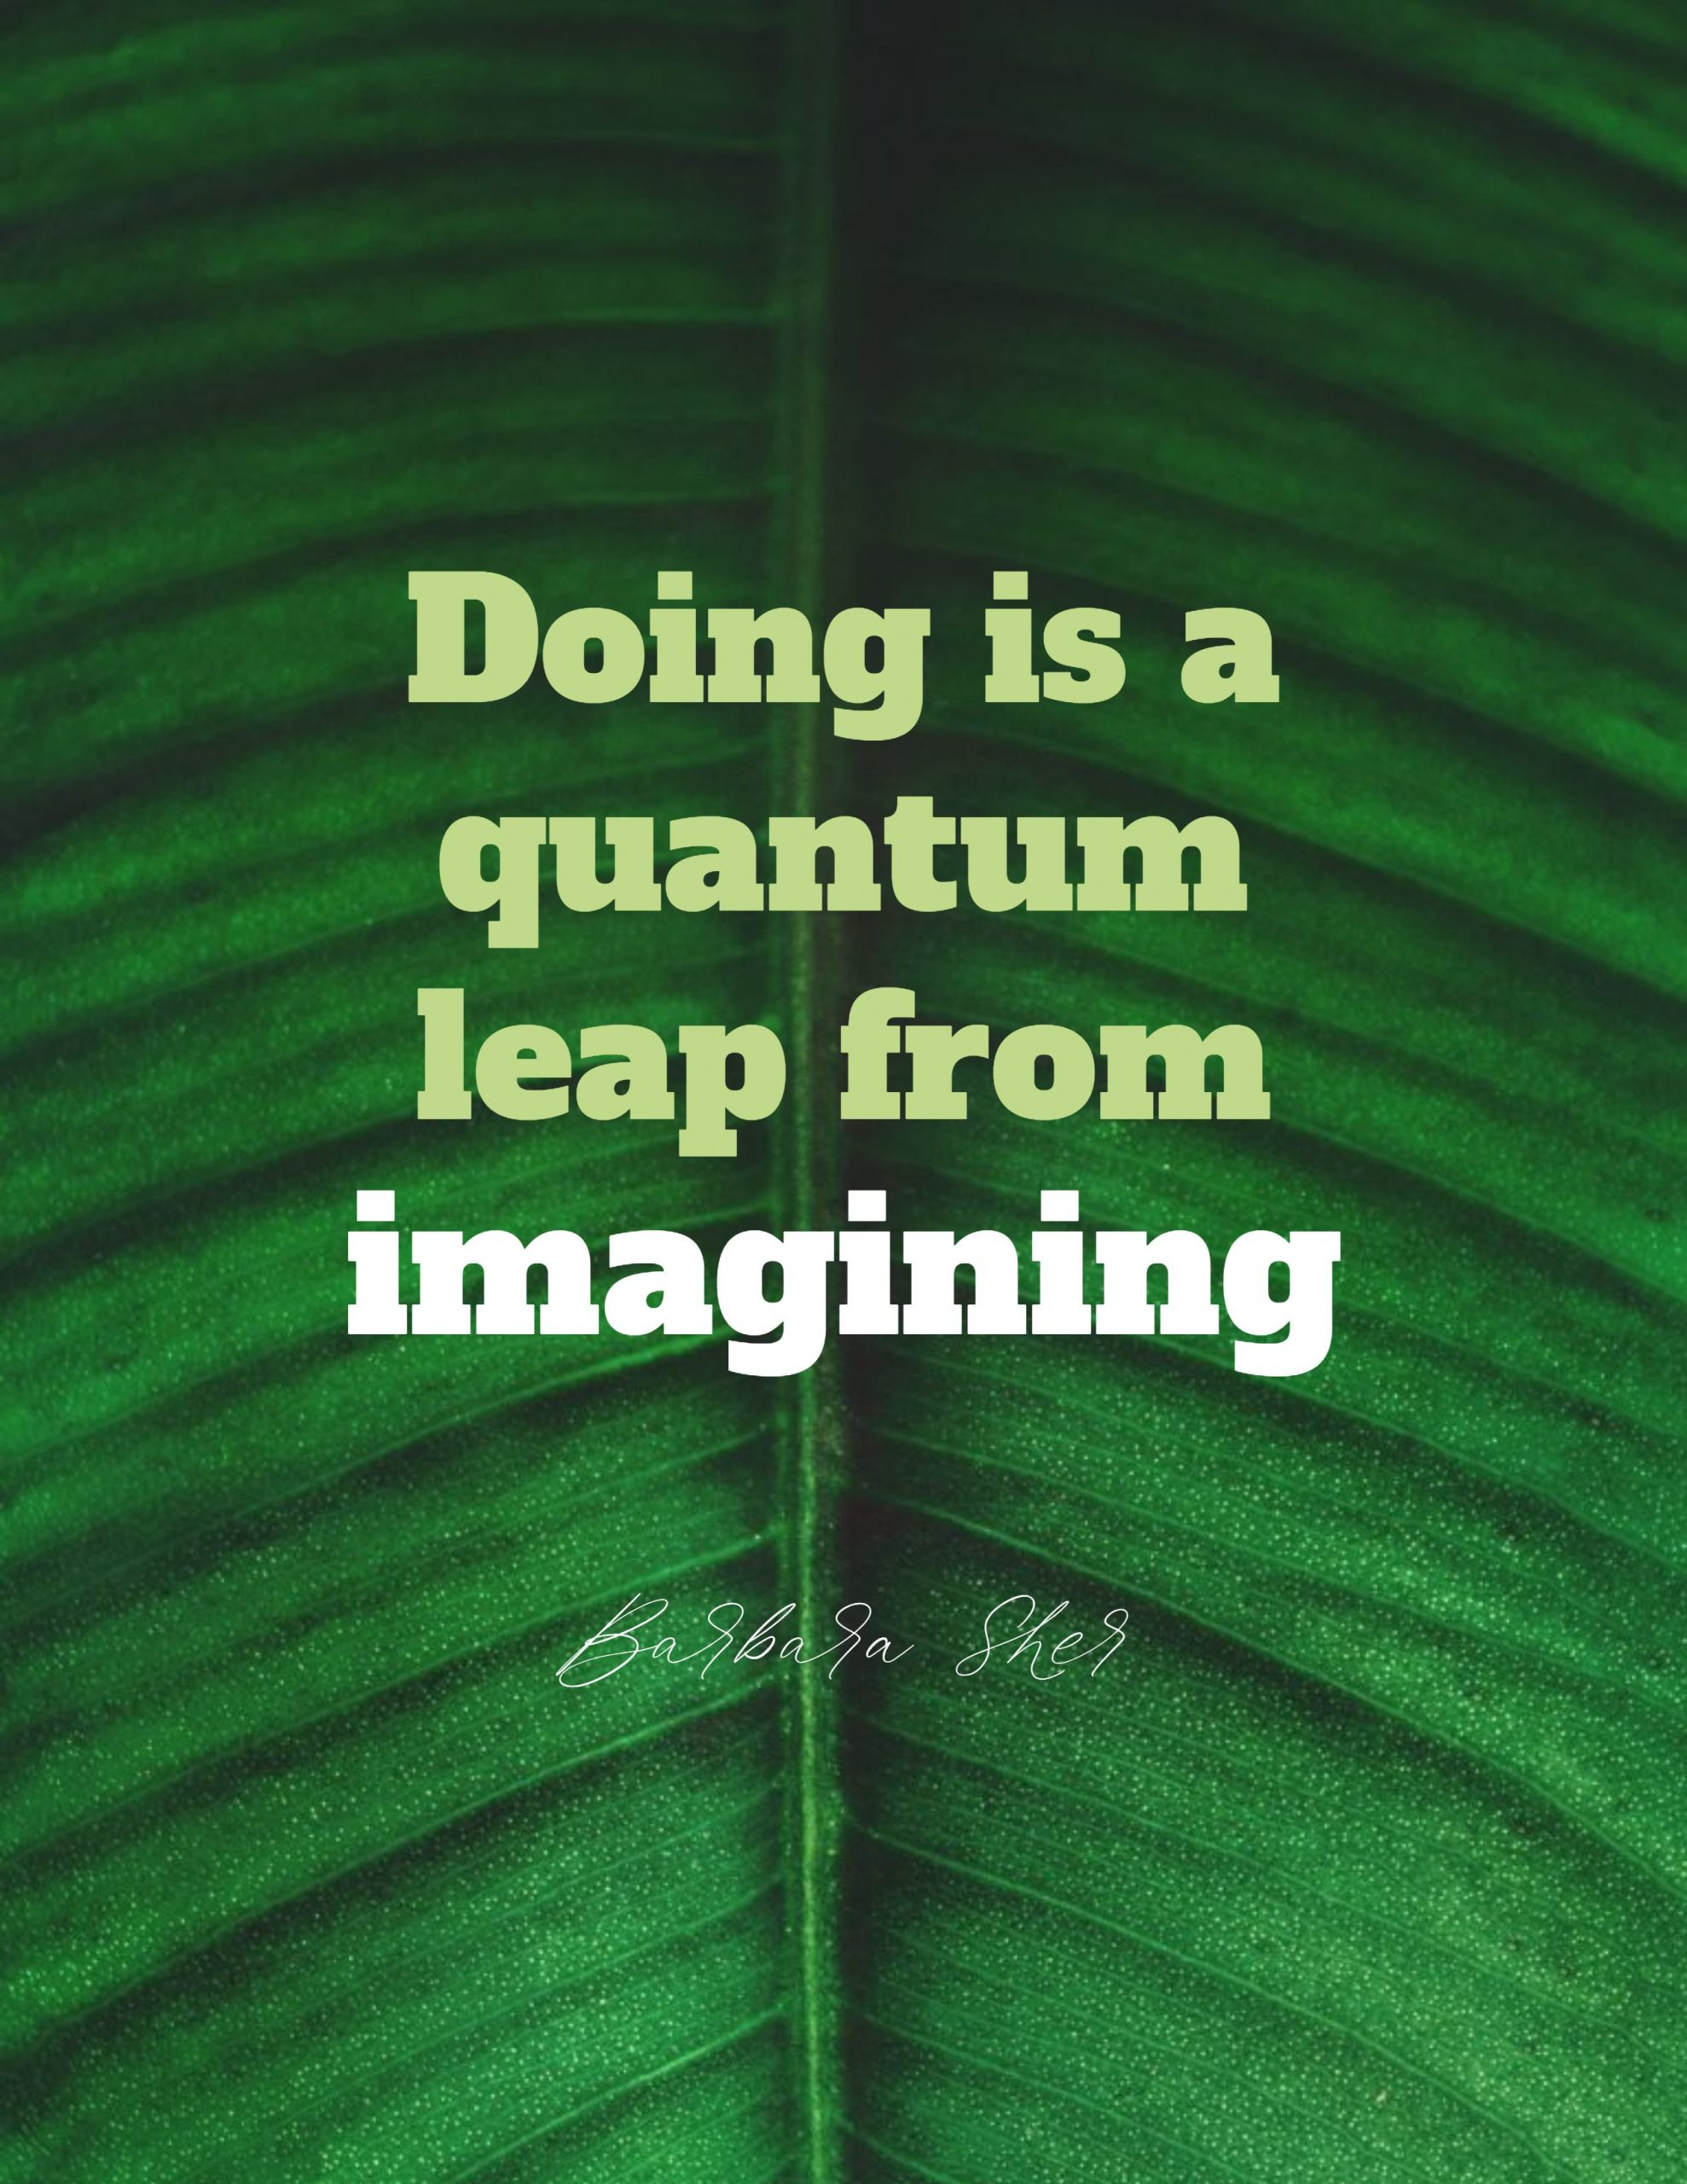 Quotes image of Doing is a quantum leap from imagining.